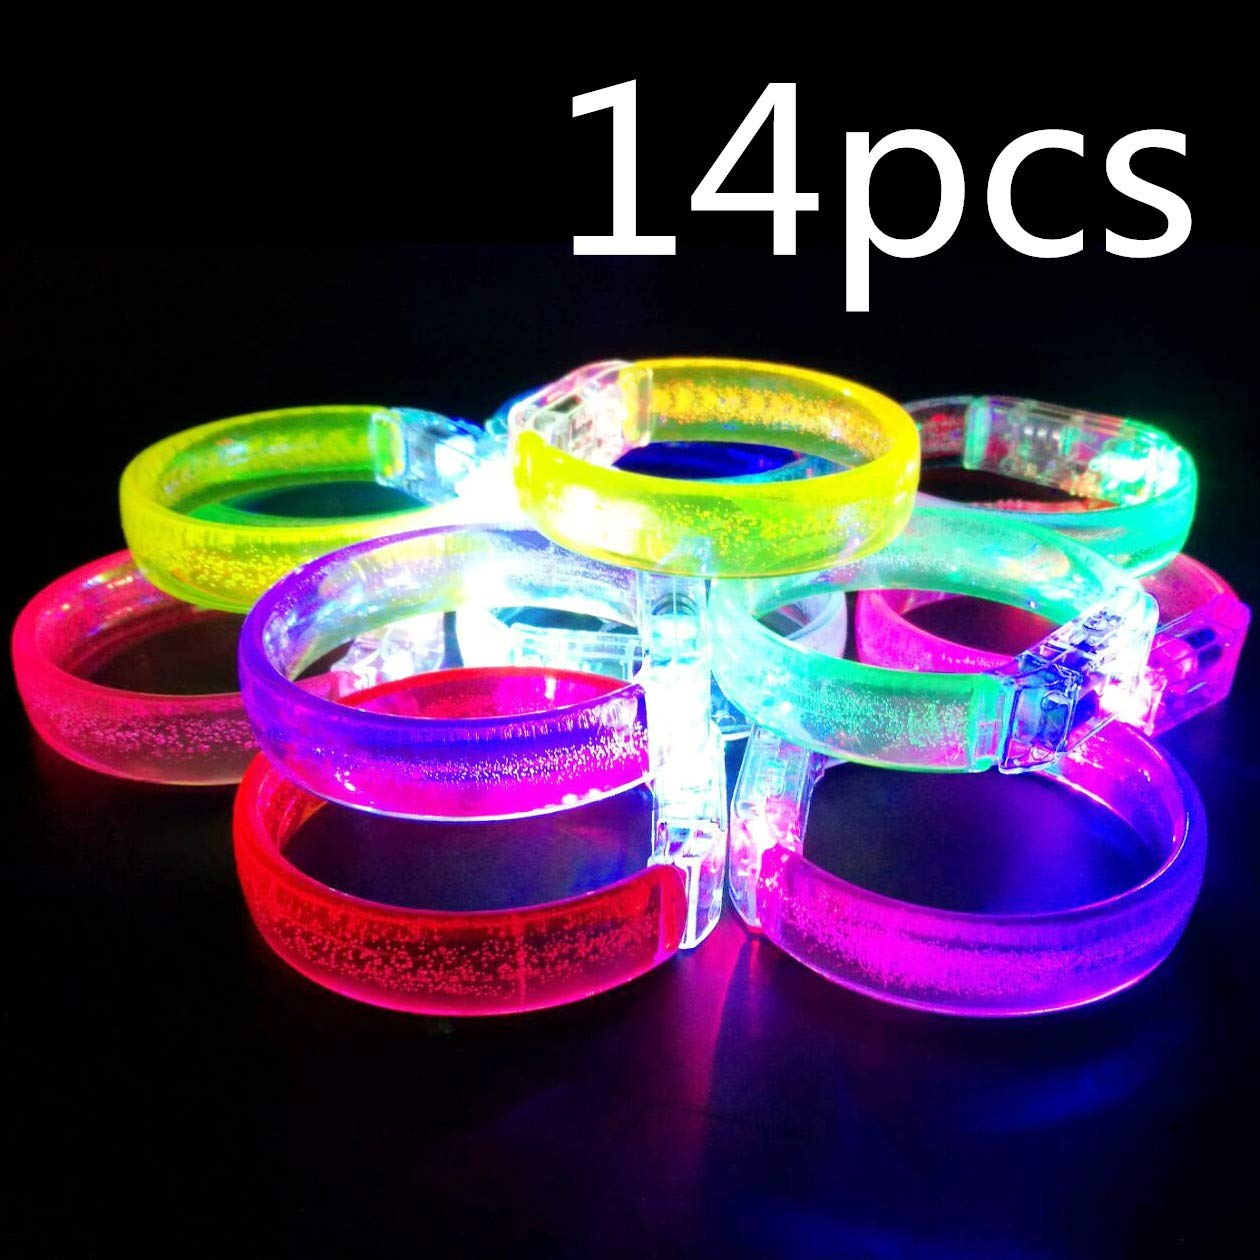 HongFu 14Pcs and 14 Spare Batteries Multicolor Glow in The Dark LED Stick Bracelet Light Up Party Favors Glow Toys Supplies by HongFu